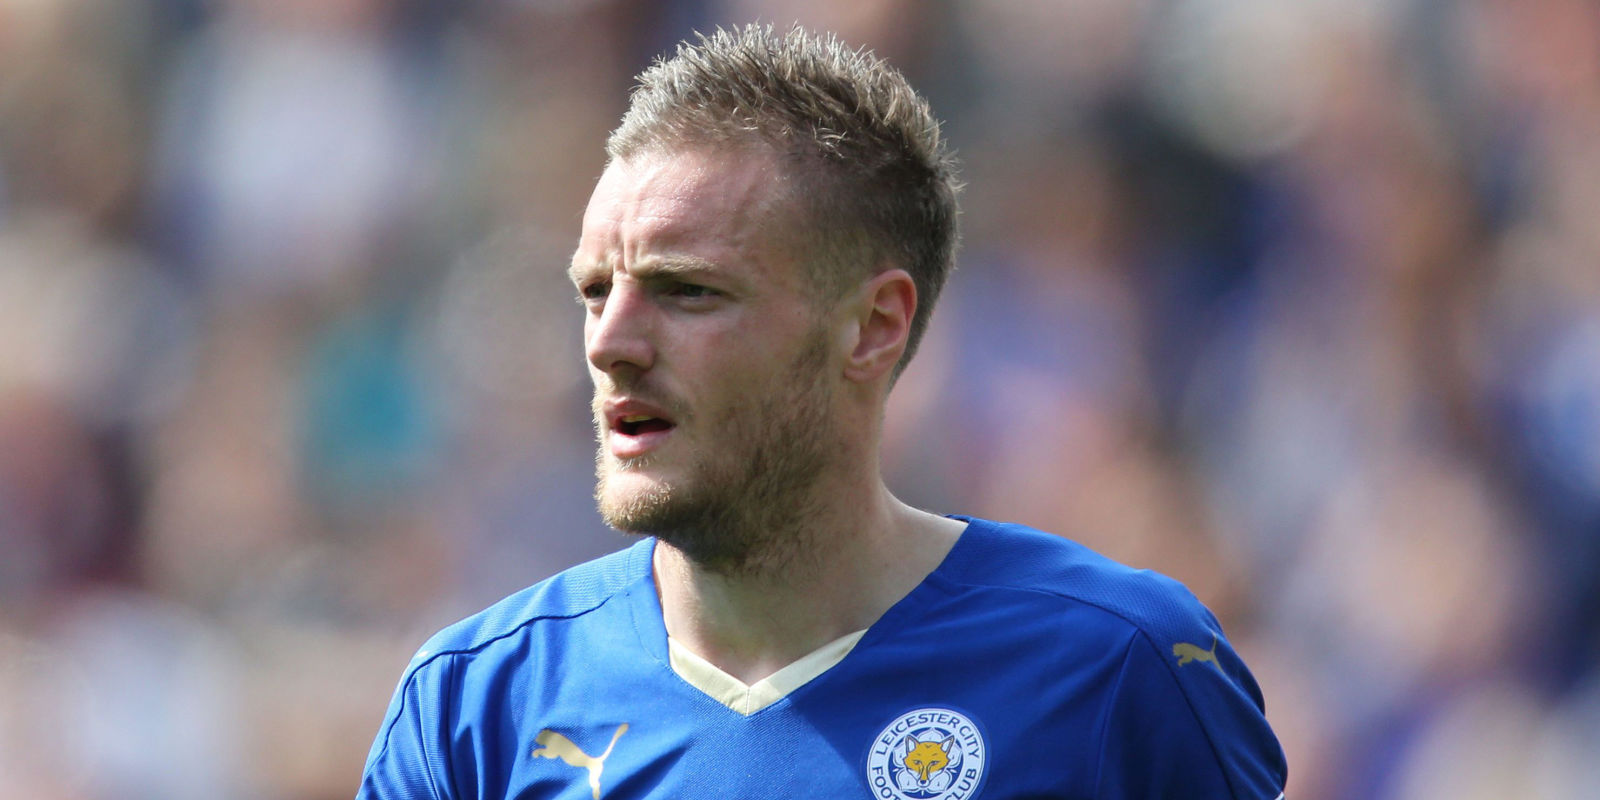 Stop everything Leicester City s Jamie Vardy is ting his own